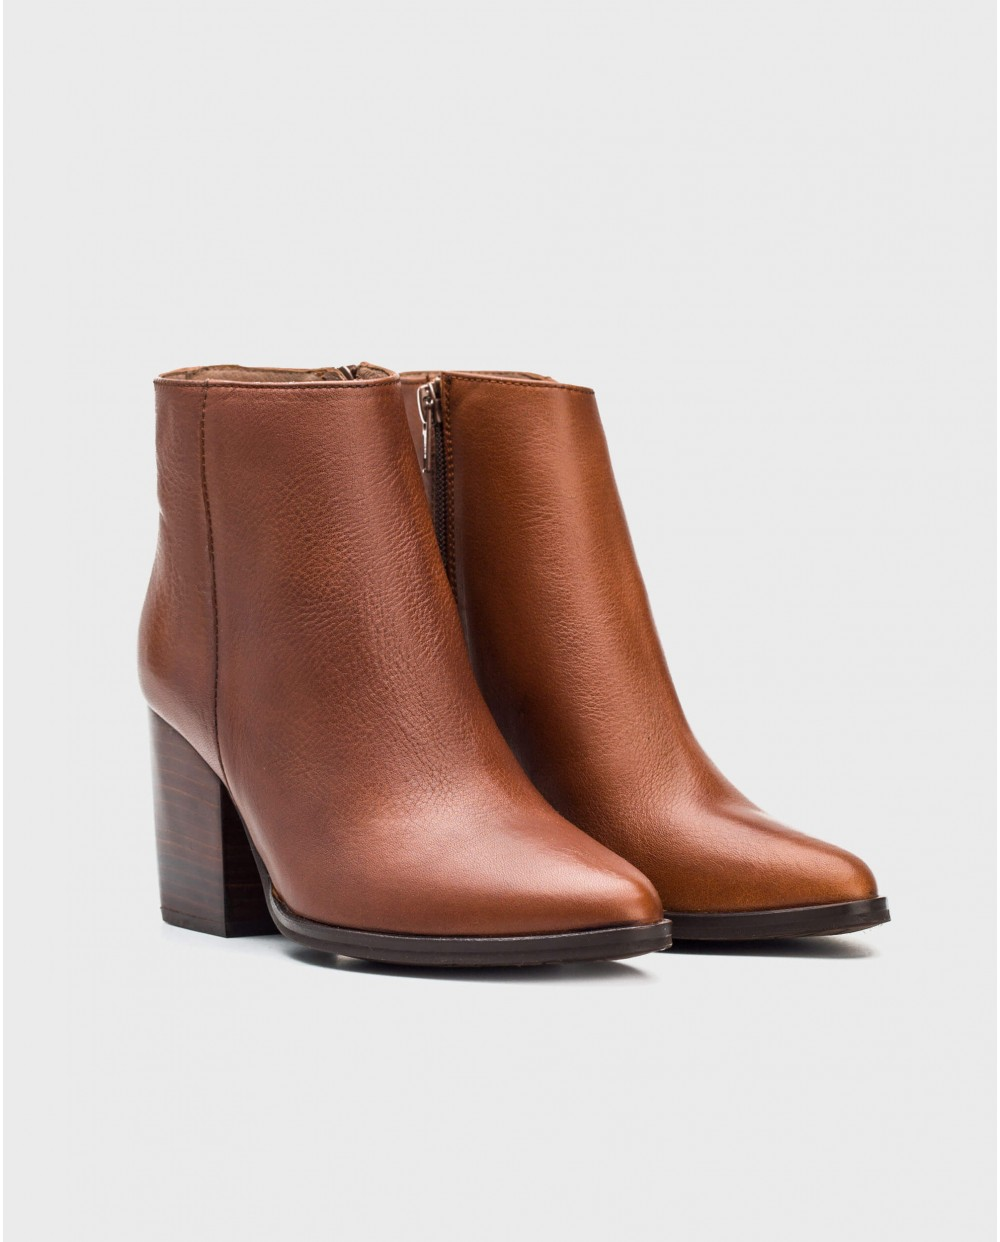 Wonders-Ankle Boots-Leather cowboy heeled ankle boot